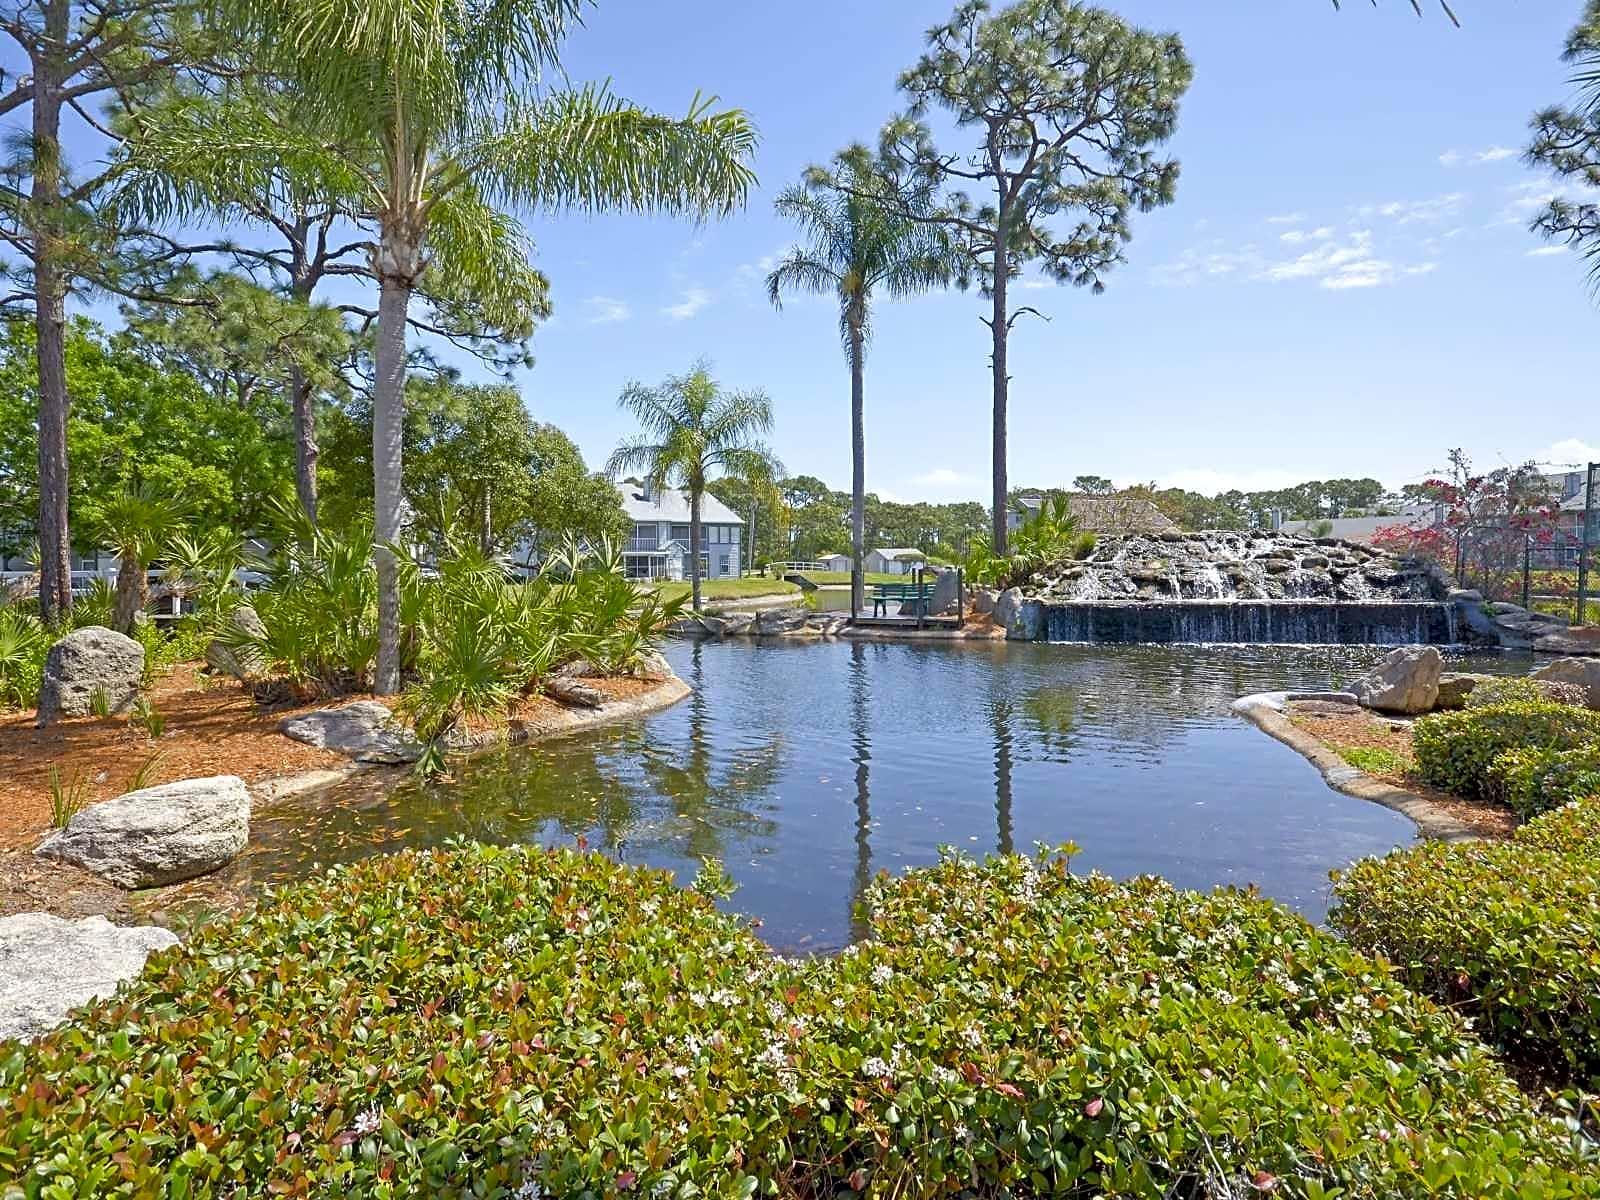 Apartments Near Florida Tech Lake In The Woods for Florida Institute of Technology Students in Melbourne, FL